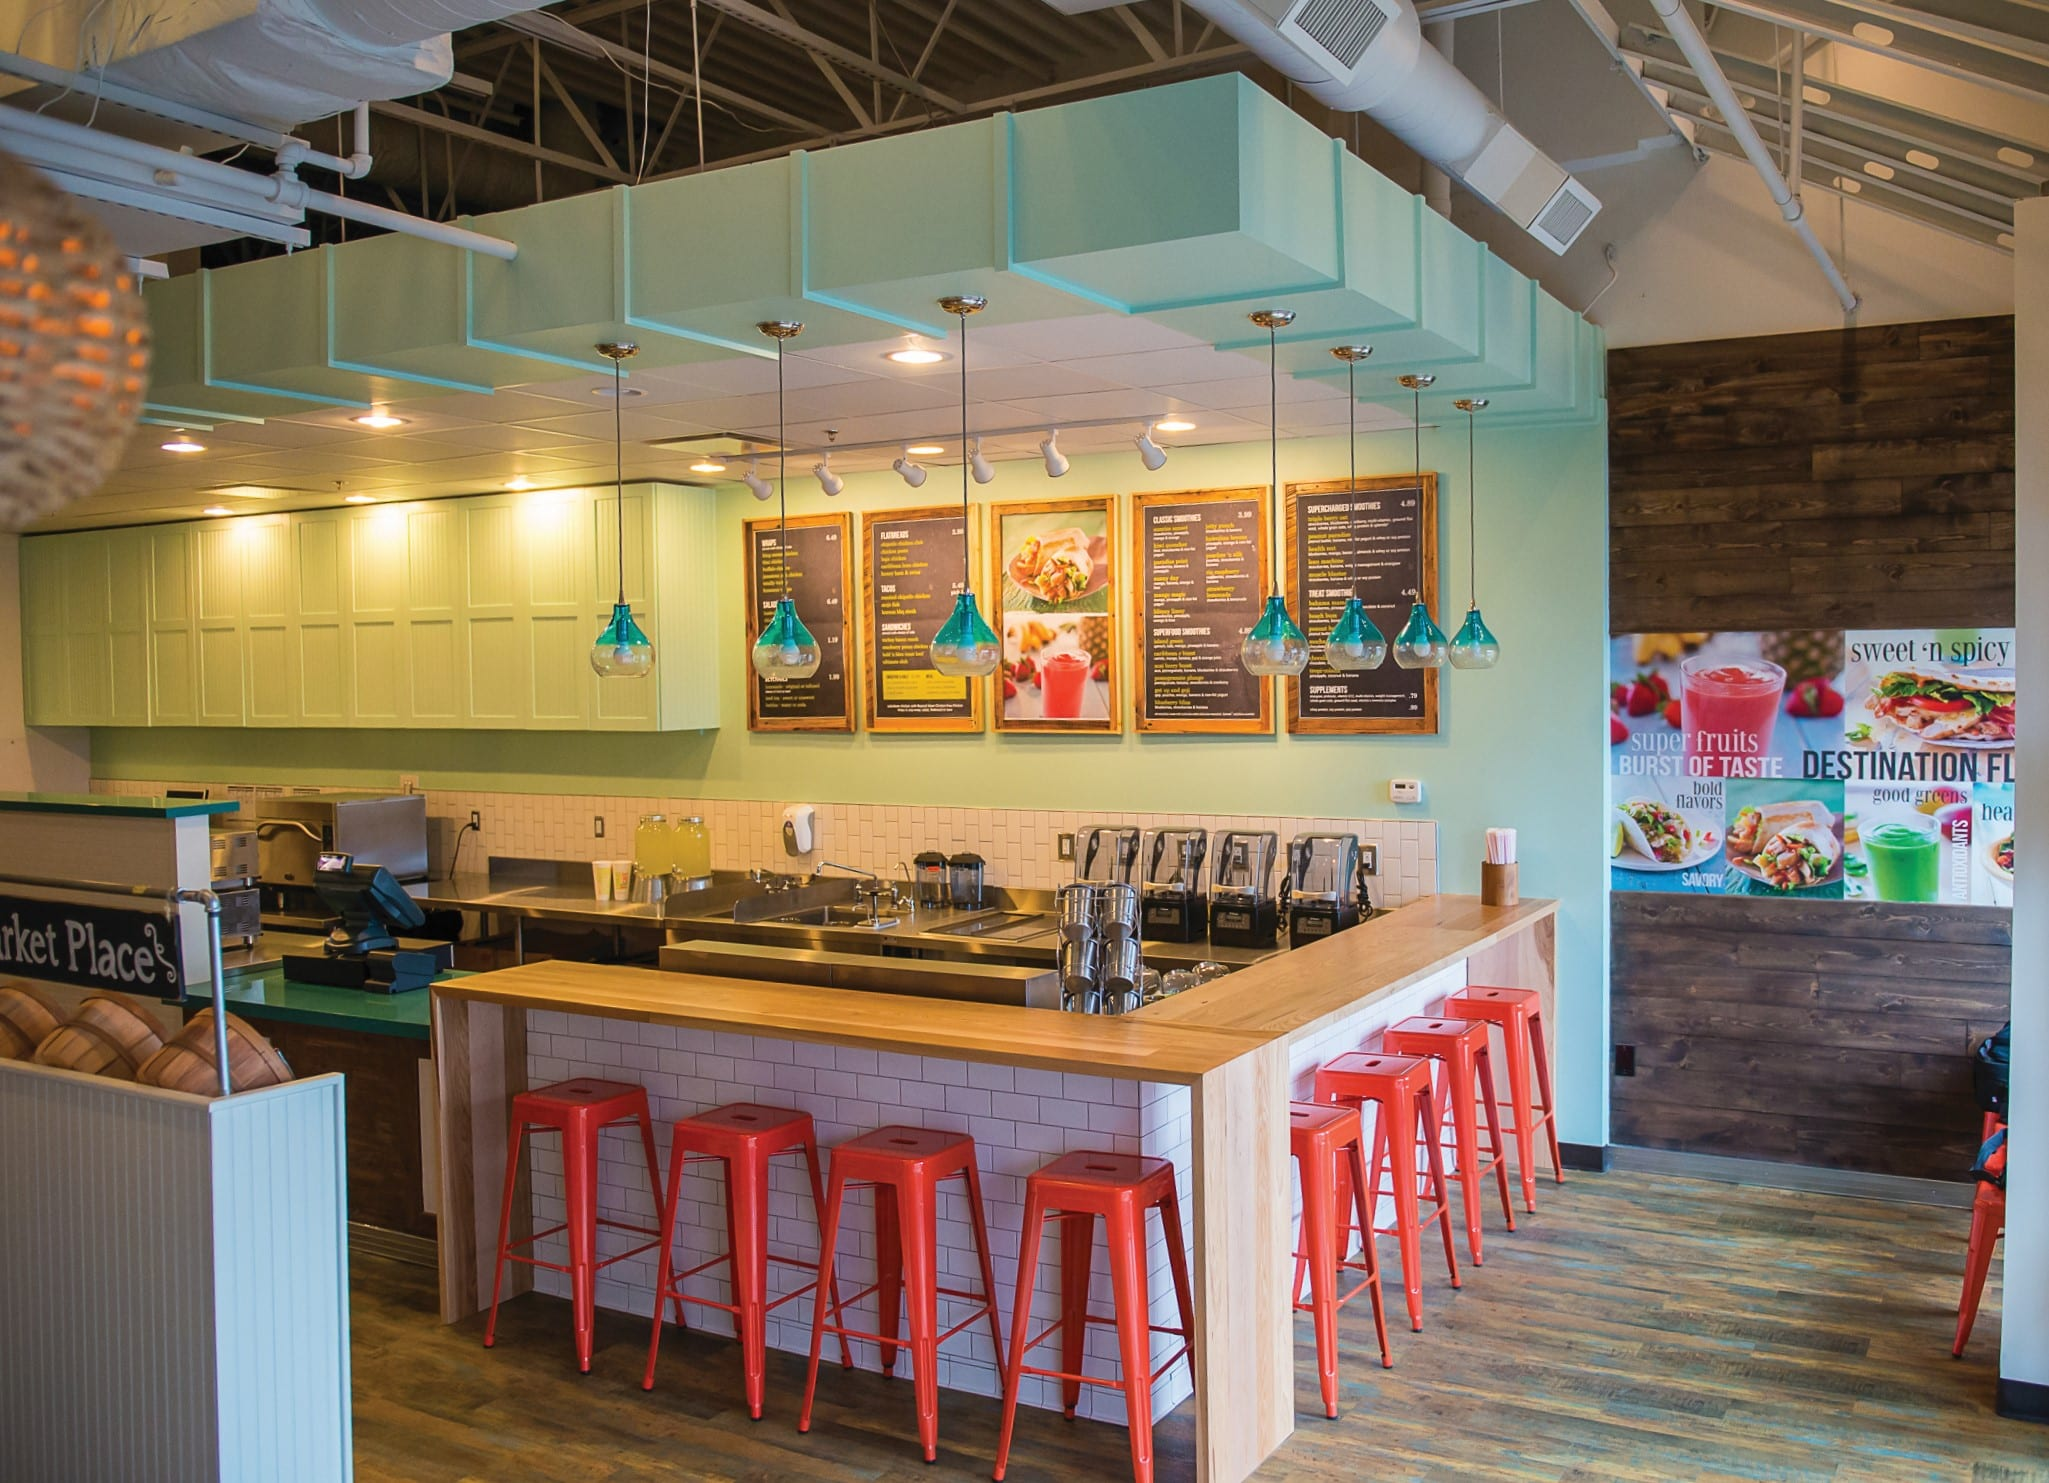 Former Stockbroker Shares His Love for Tropical Smoothie Cafe, Bonds with His Staff